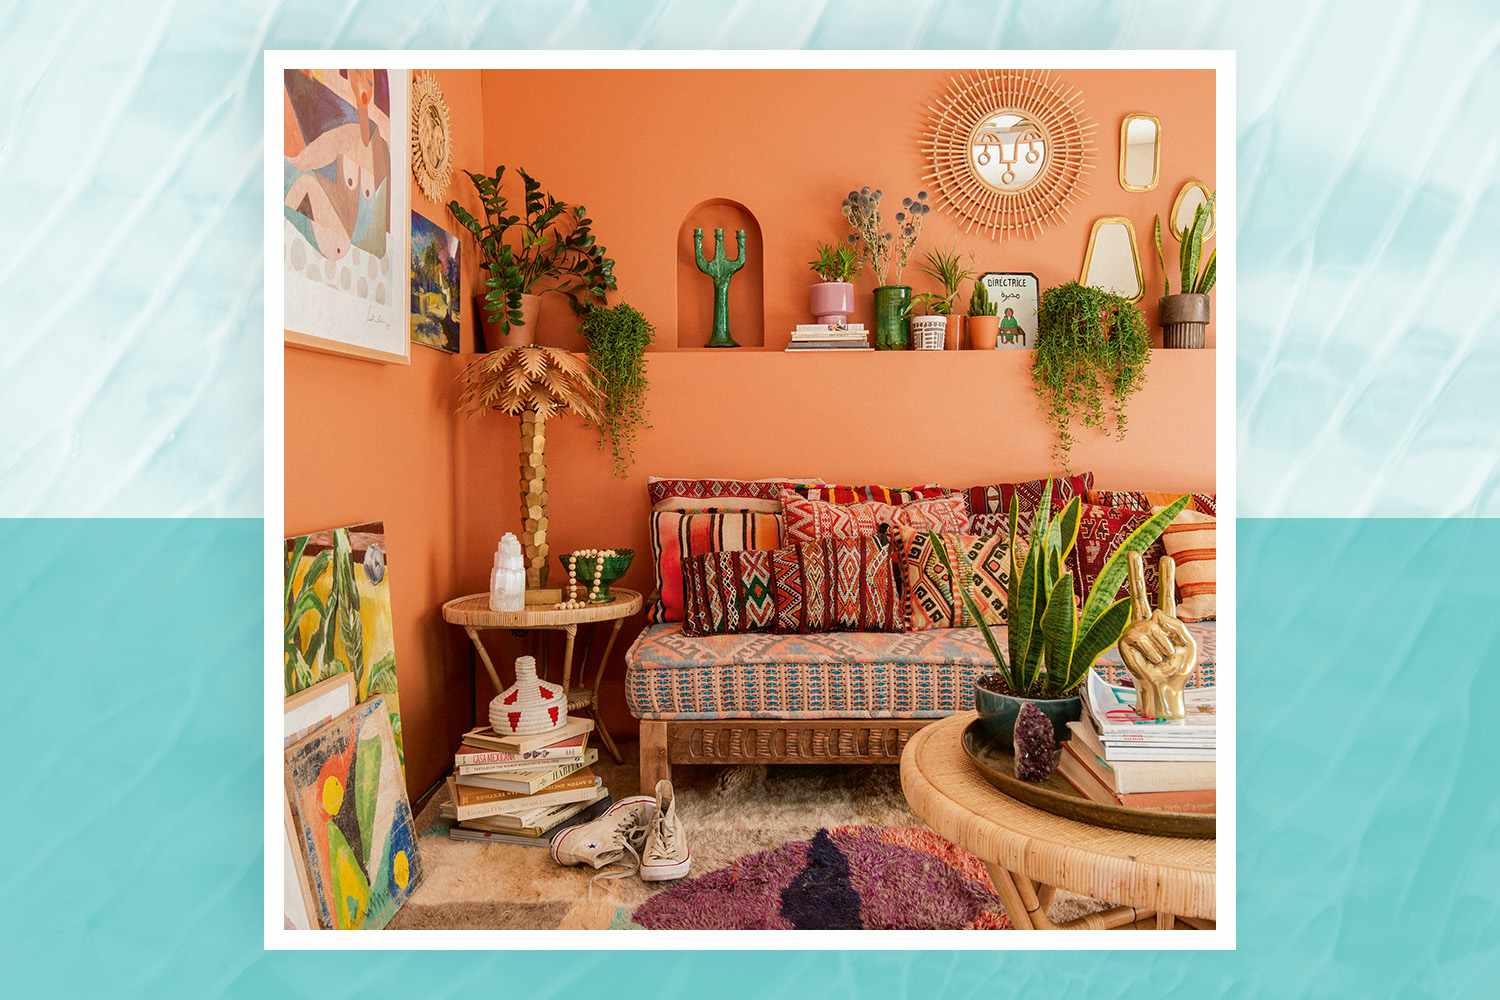 Justina Blakeney living room warm terra cotta walls, plants, and colorful rug, pillows, and wall art for Jungalow